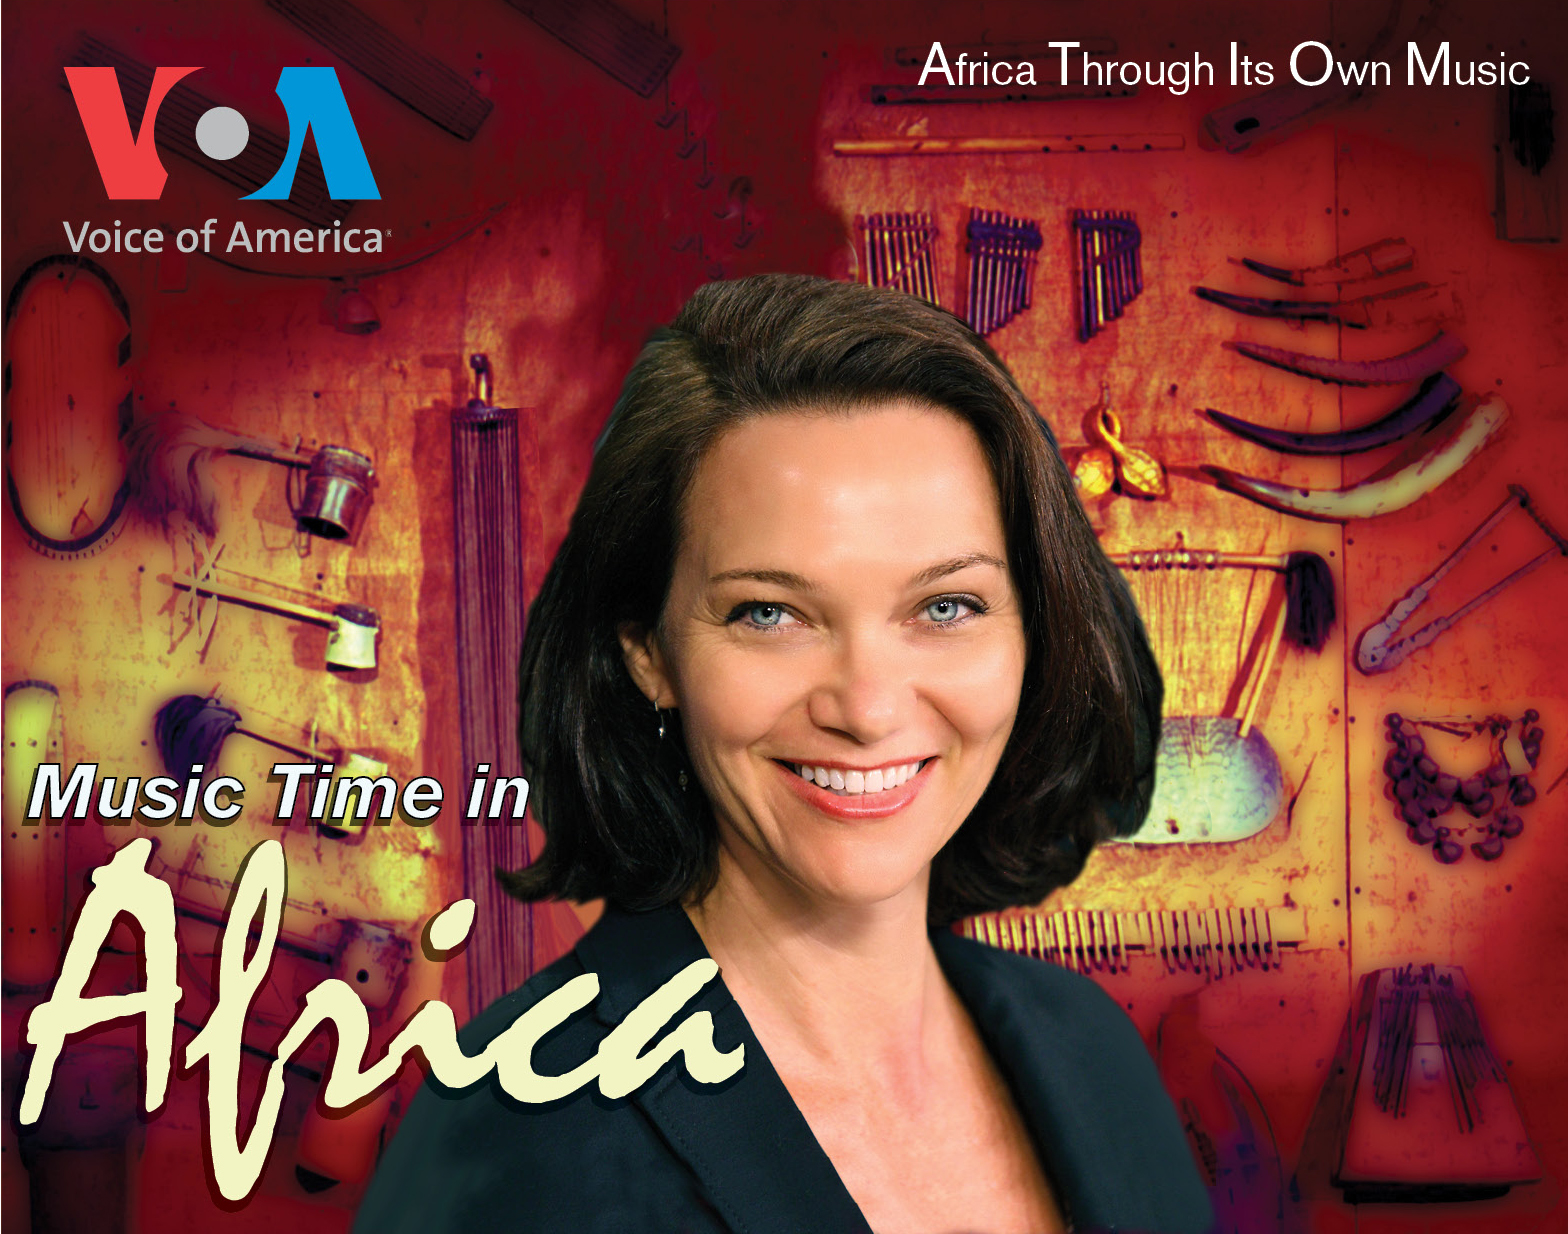 promotional poster for Music Time in Africa, with the host's smiling face